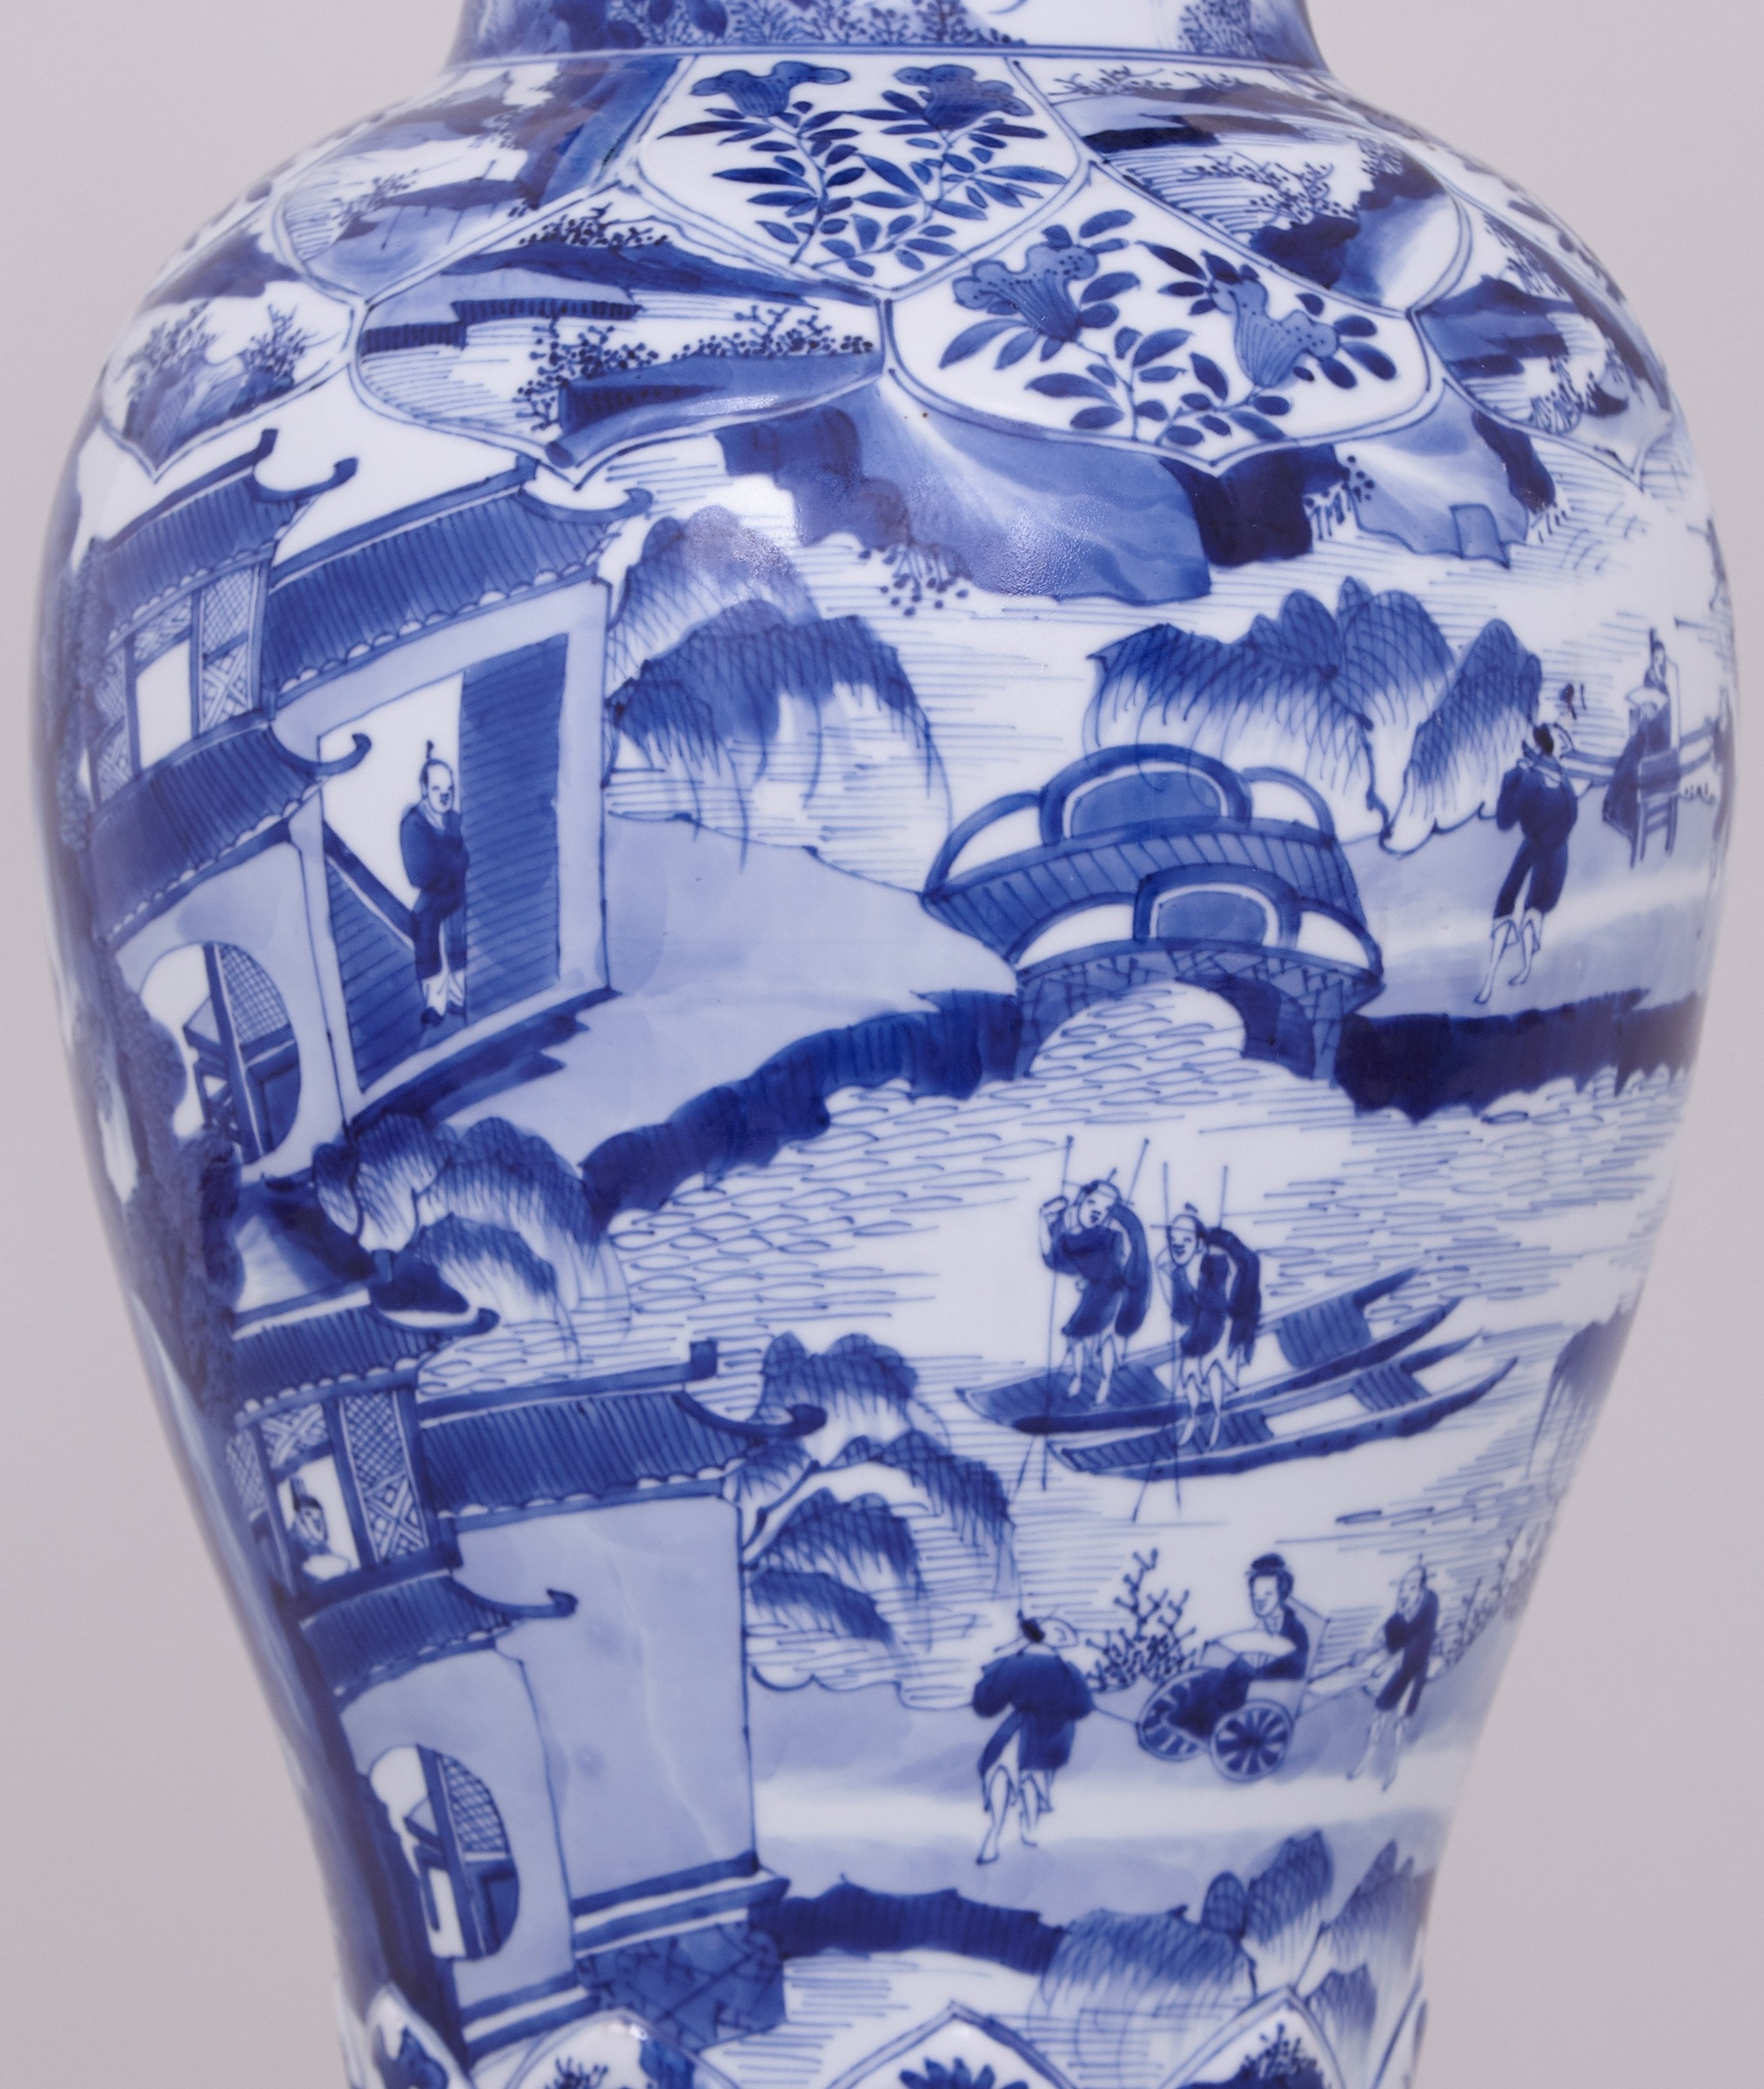 22 Amazing Tall Blue Vase 2021 free download tall blue vase of a pair of highly unusual tall and fine chinese blue and white vases regarding a pair of highly unusual tall and fine chinese blue and white vases and covers